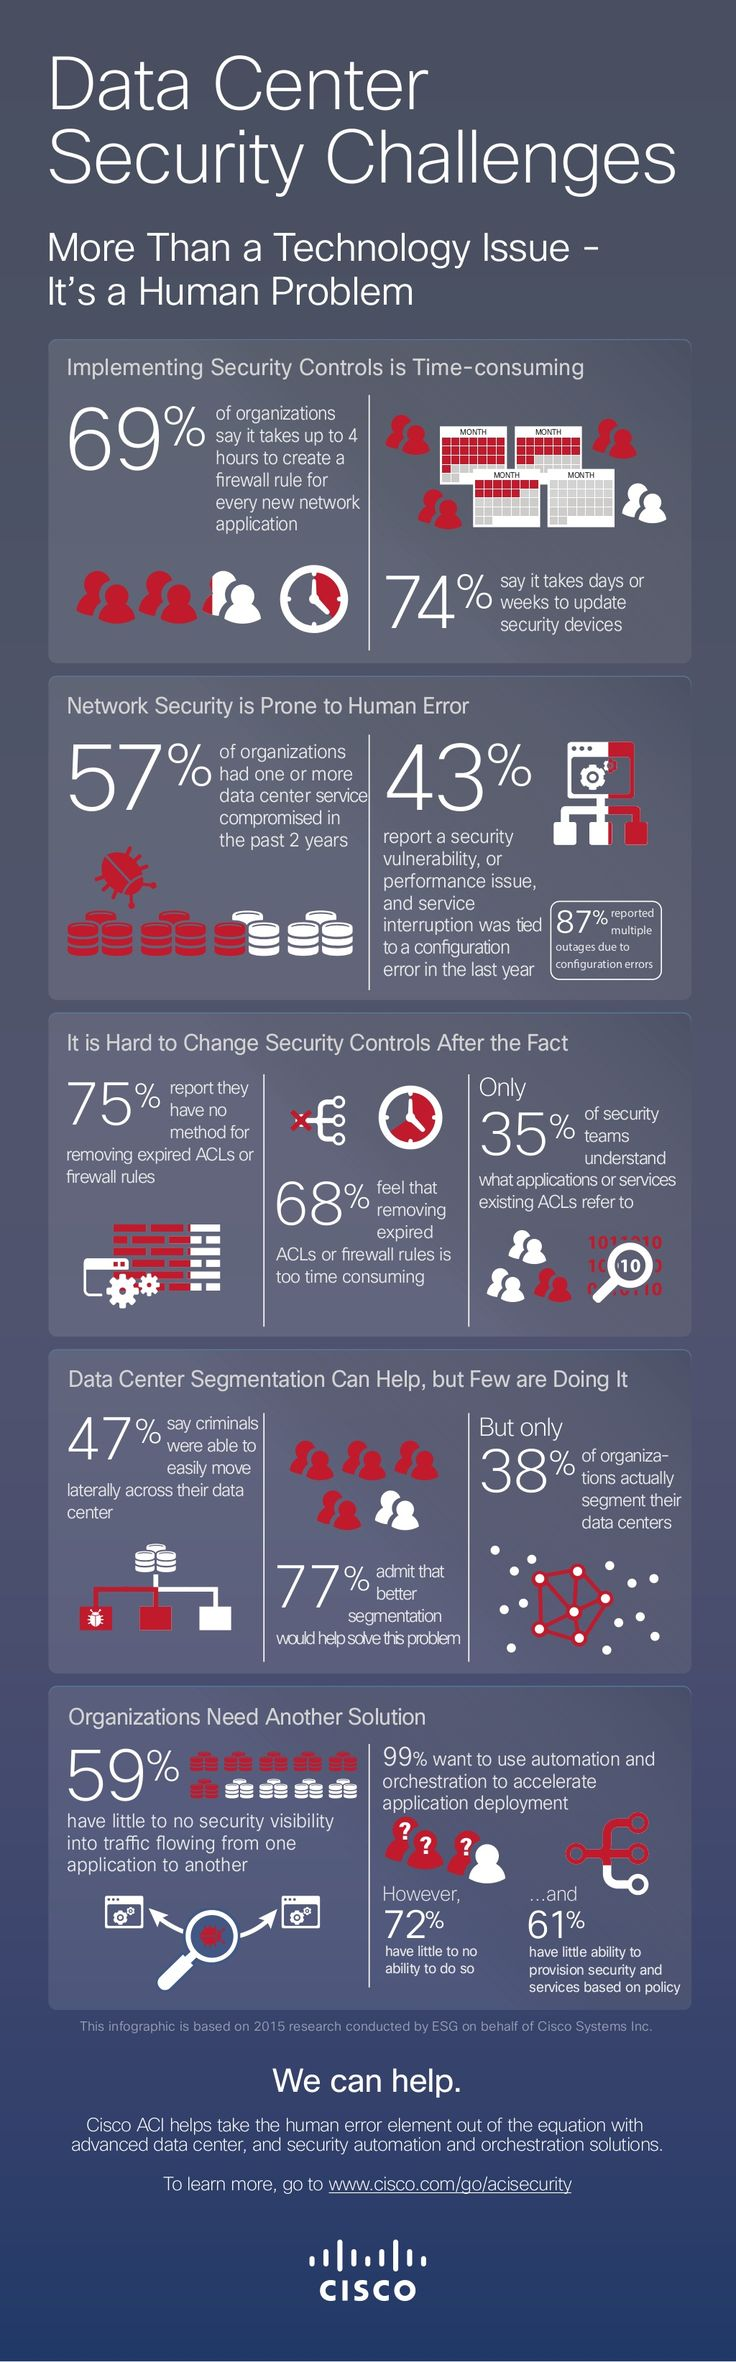 Data Center Security Challenges by Cisco Security via slideshare